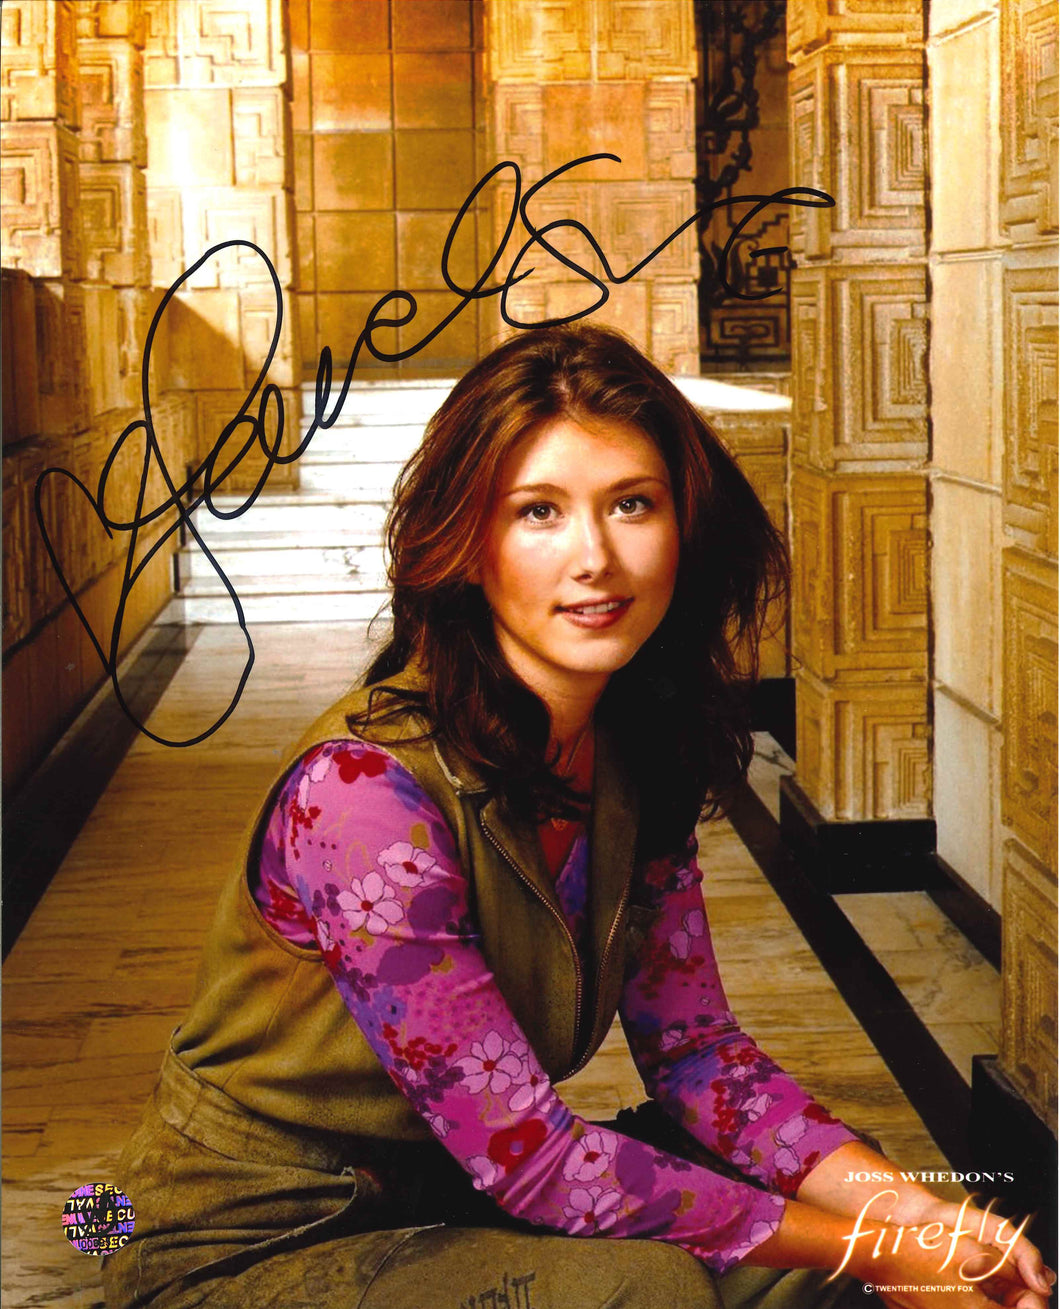 Jewel Staite Signed Firefly Photo